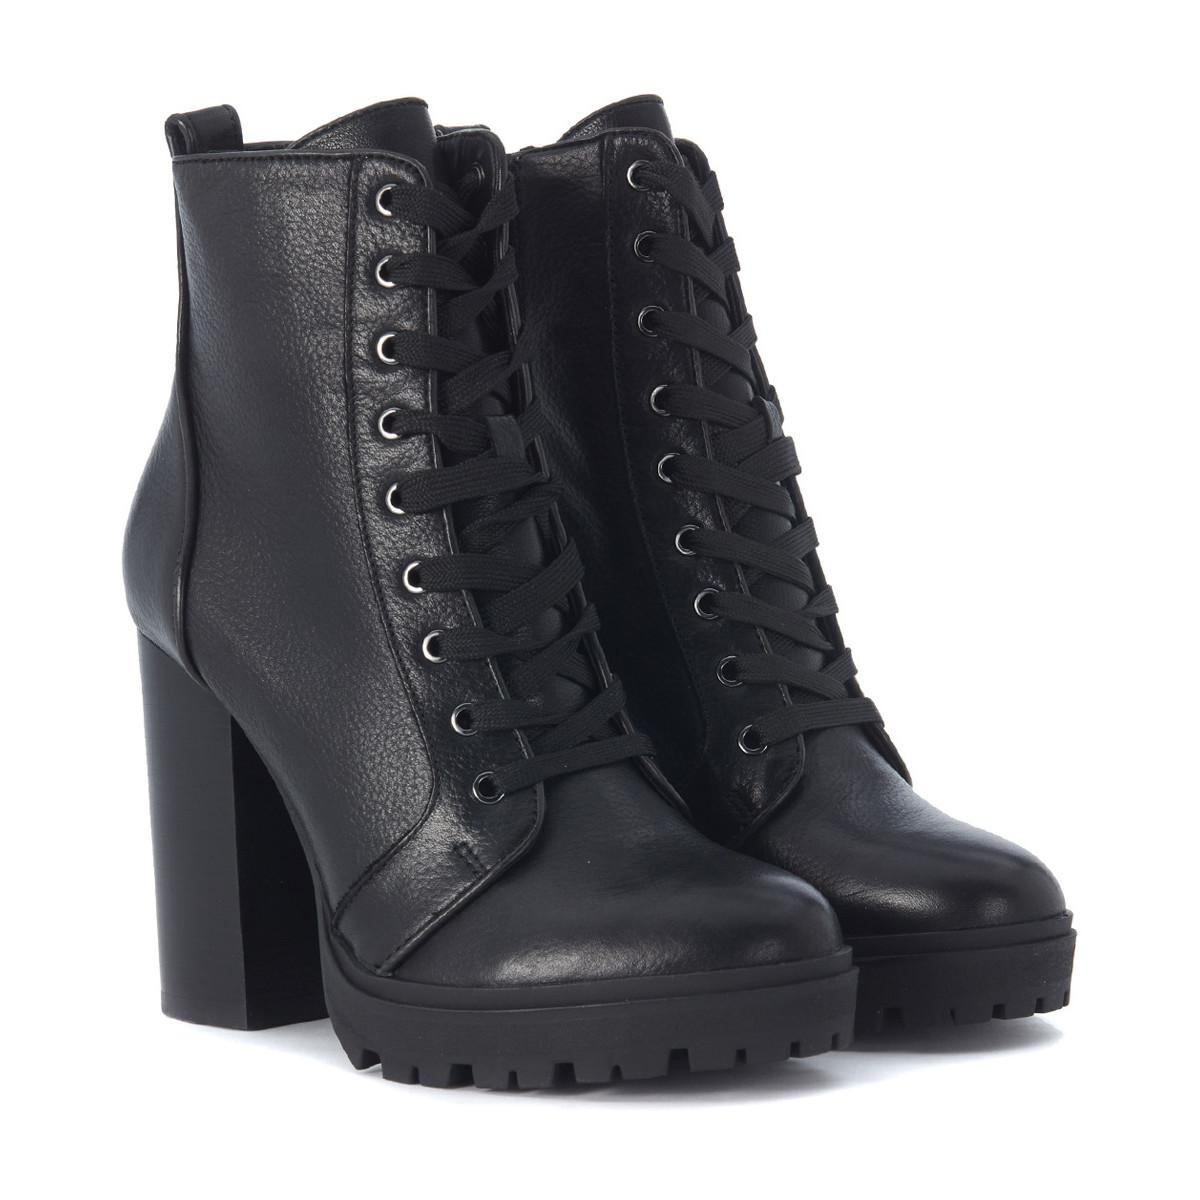 0af5e992e42 Steve Madden Laurie Black Leather Combat Boot Women s Low Ankle ...